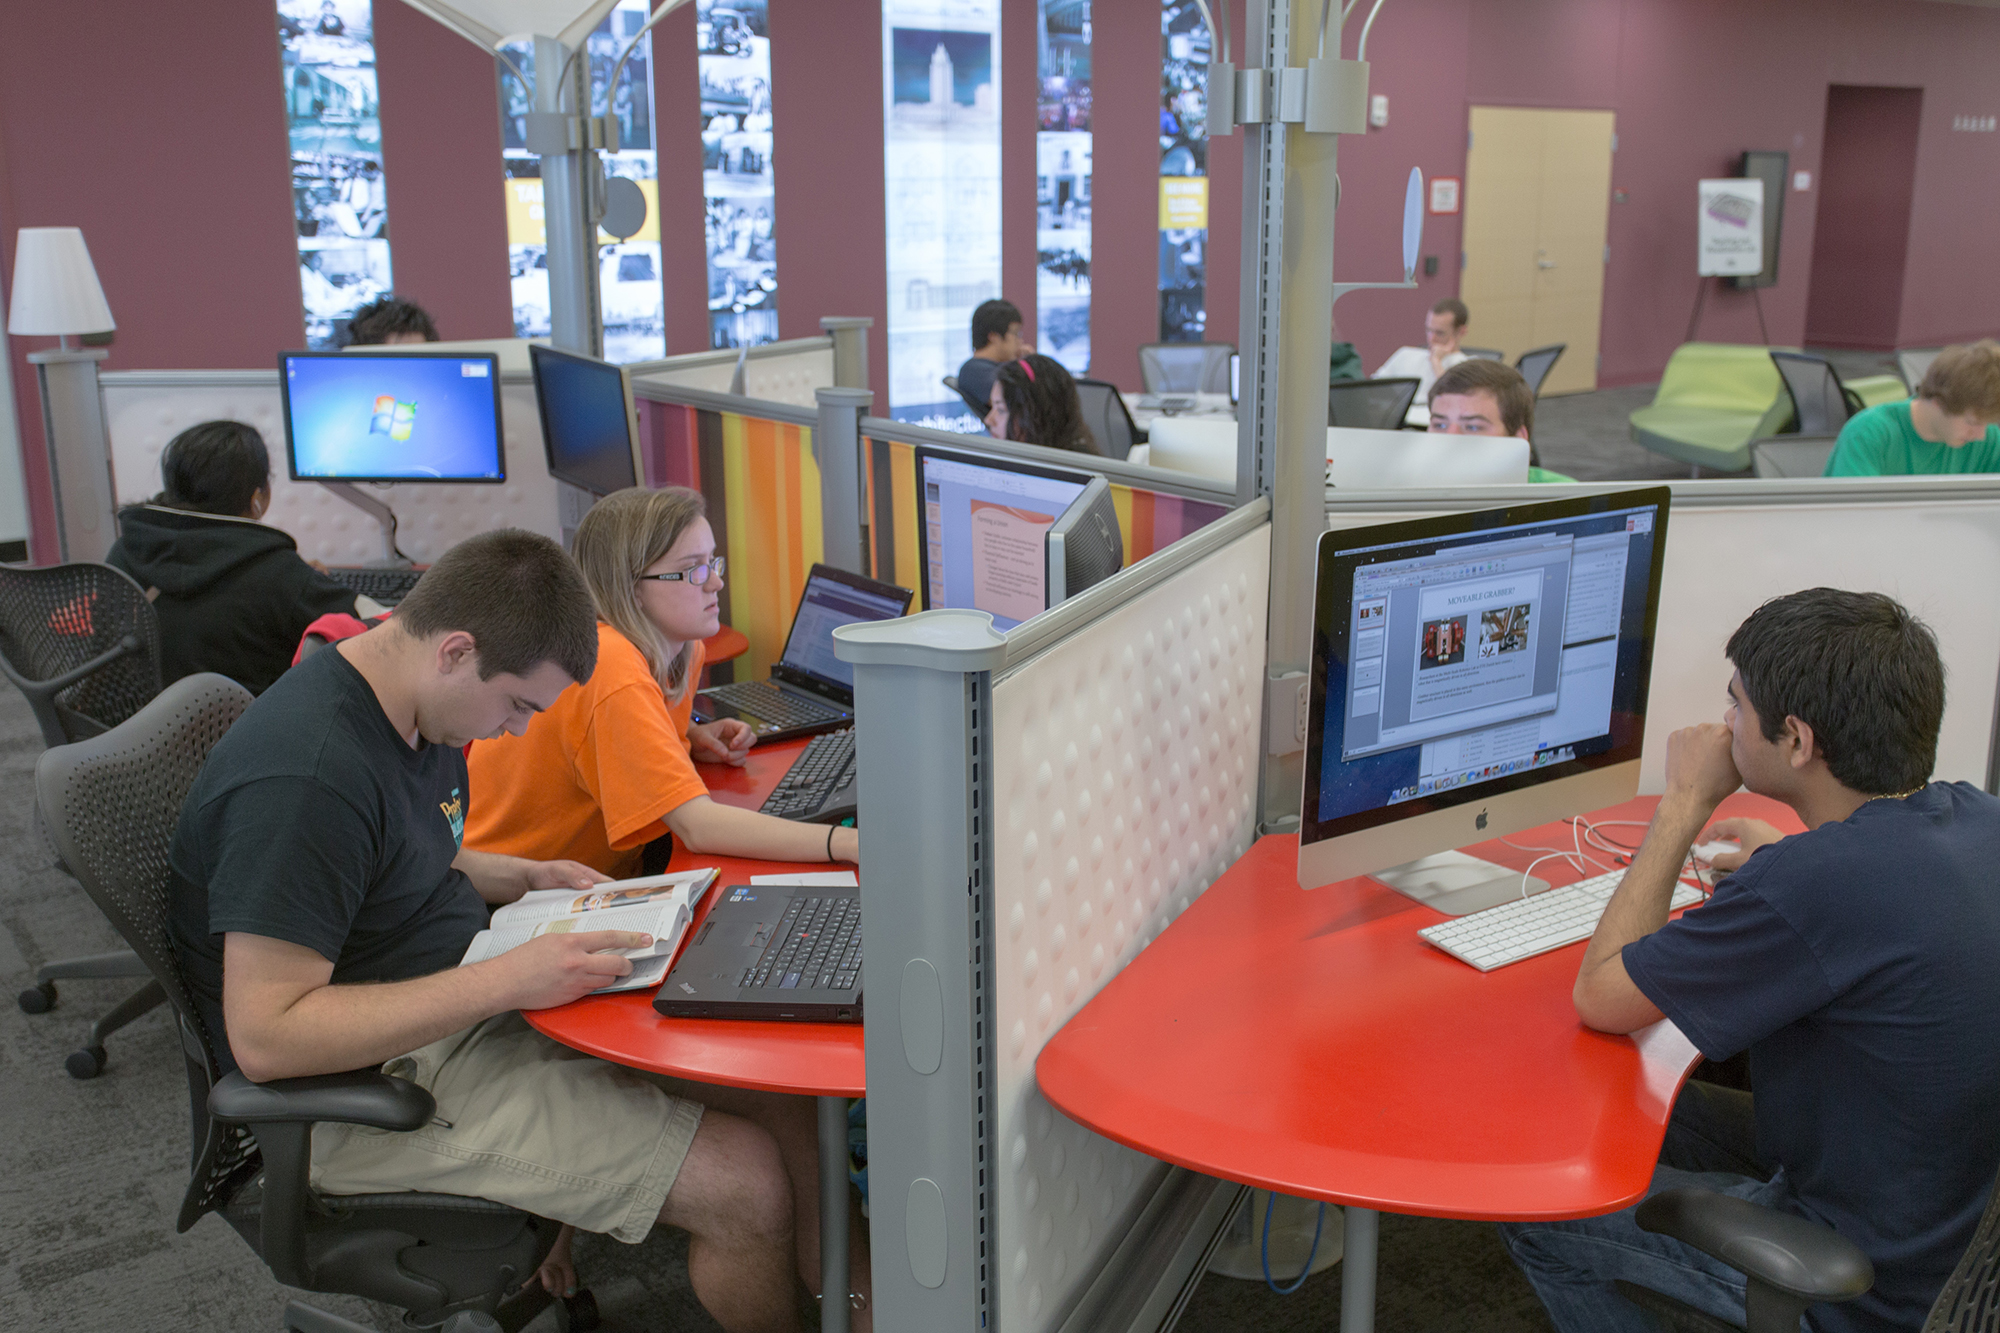 Students working at three computer workstations on double monitors